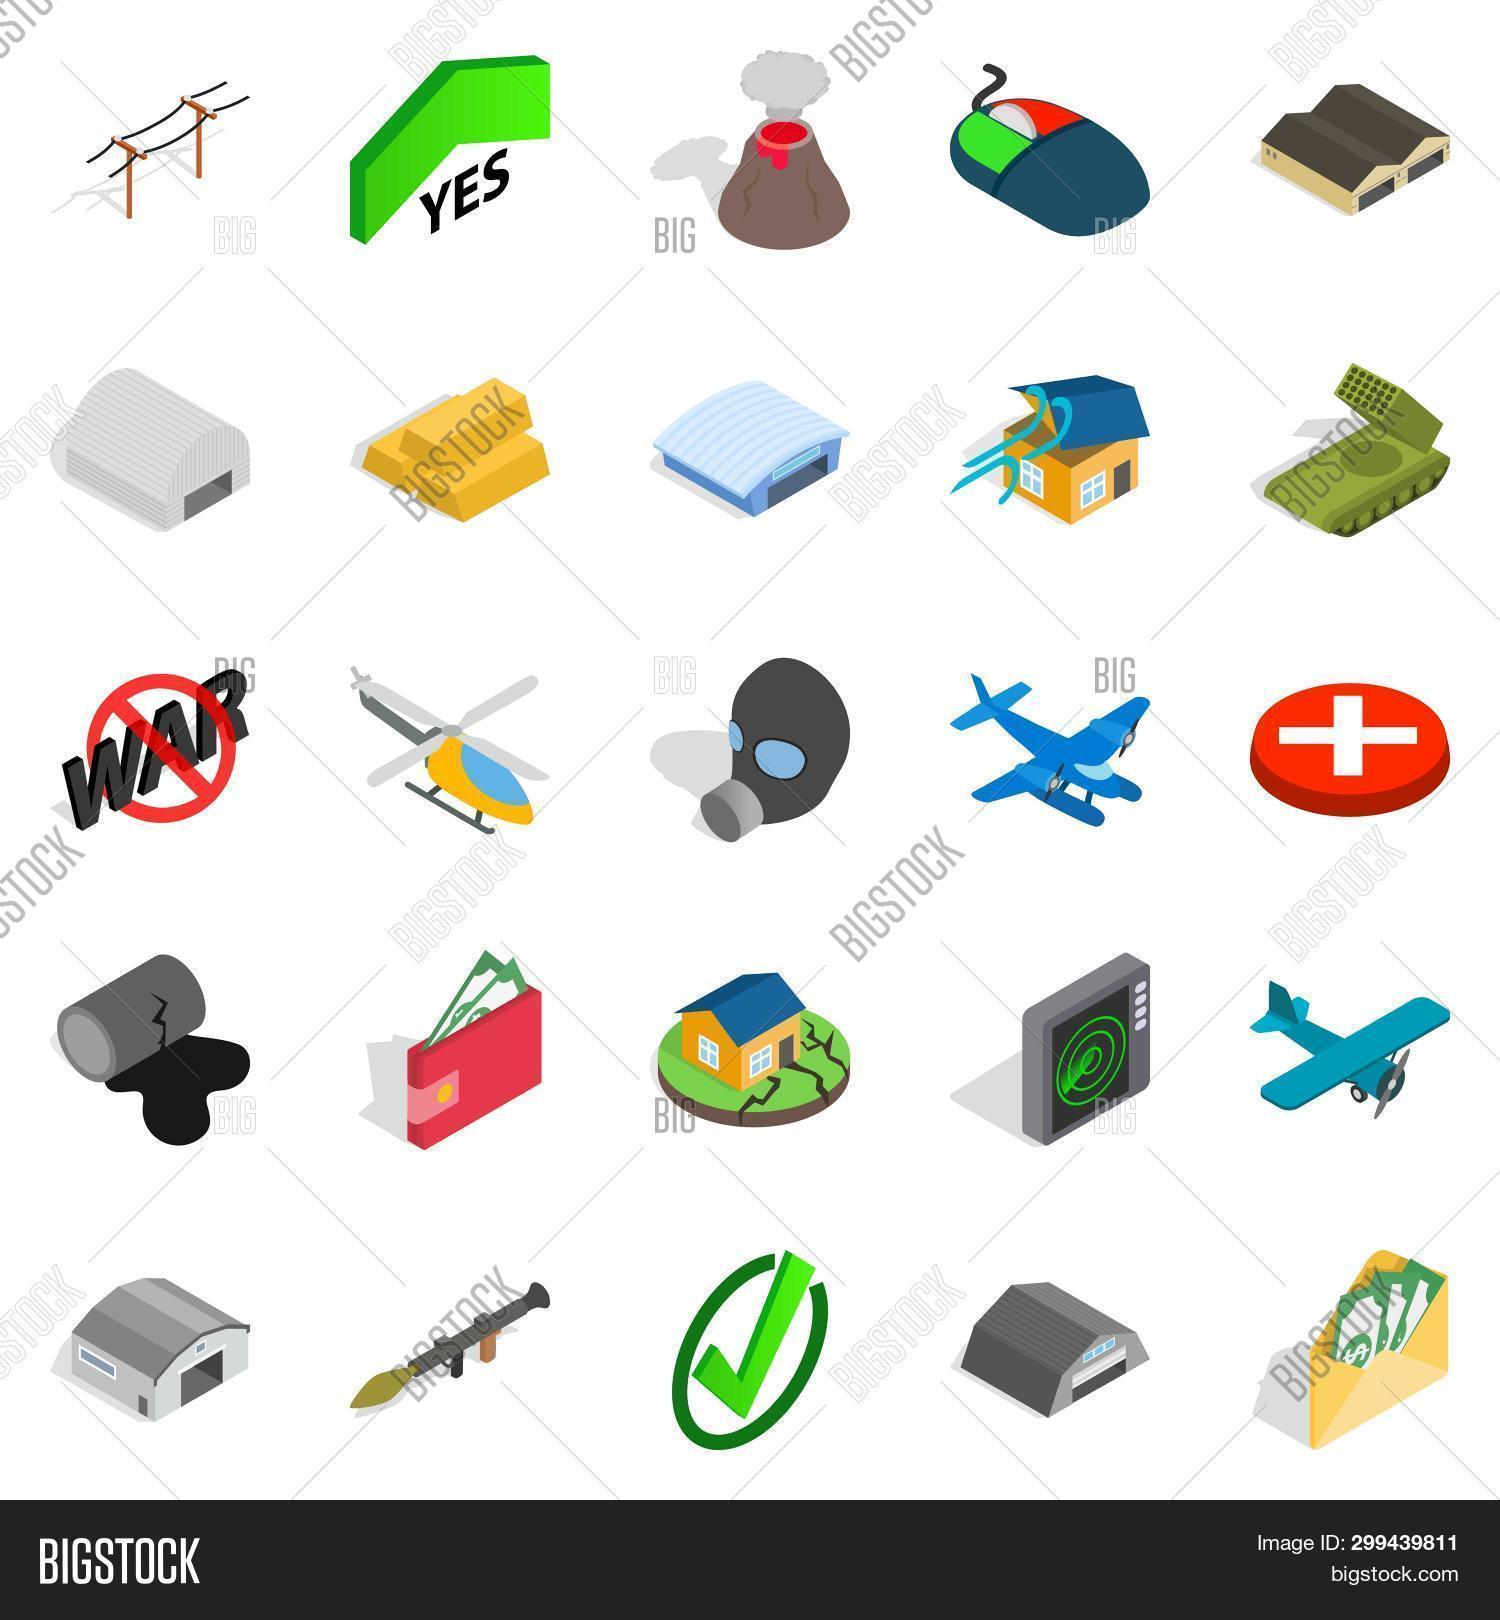 3d,air,airbase,aircraft,airplane,airport,army,attack,aviation,base,battle,bomb,bullet,city,combat,combatant,conflict,equipment,explosion,fight,figure,force,grenade,gun,helicopter,icons,illustration,isolated,isometric,man,military,navy,parachute,people,plane,rocket,set,soldier,stick,tank,target,technology,terrorism,war,warfare,wartime,weapon,wire,world